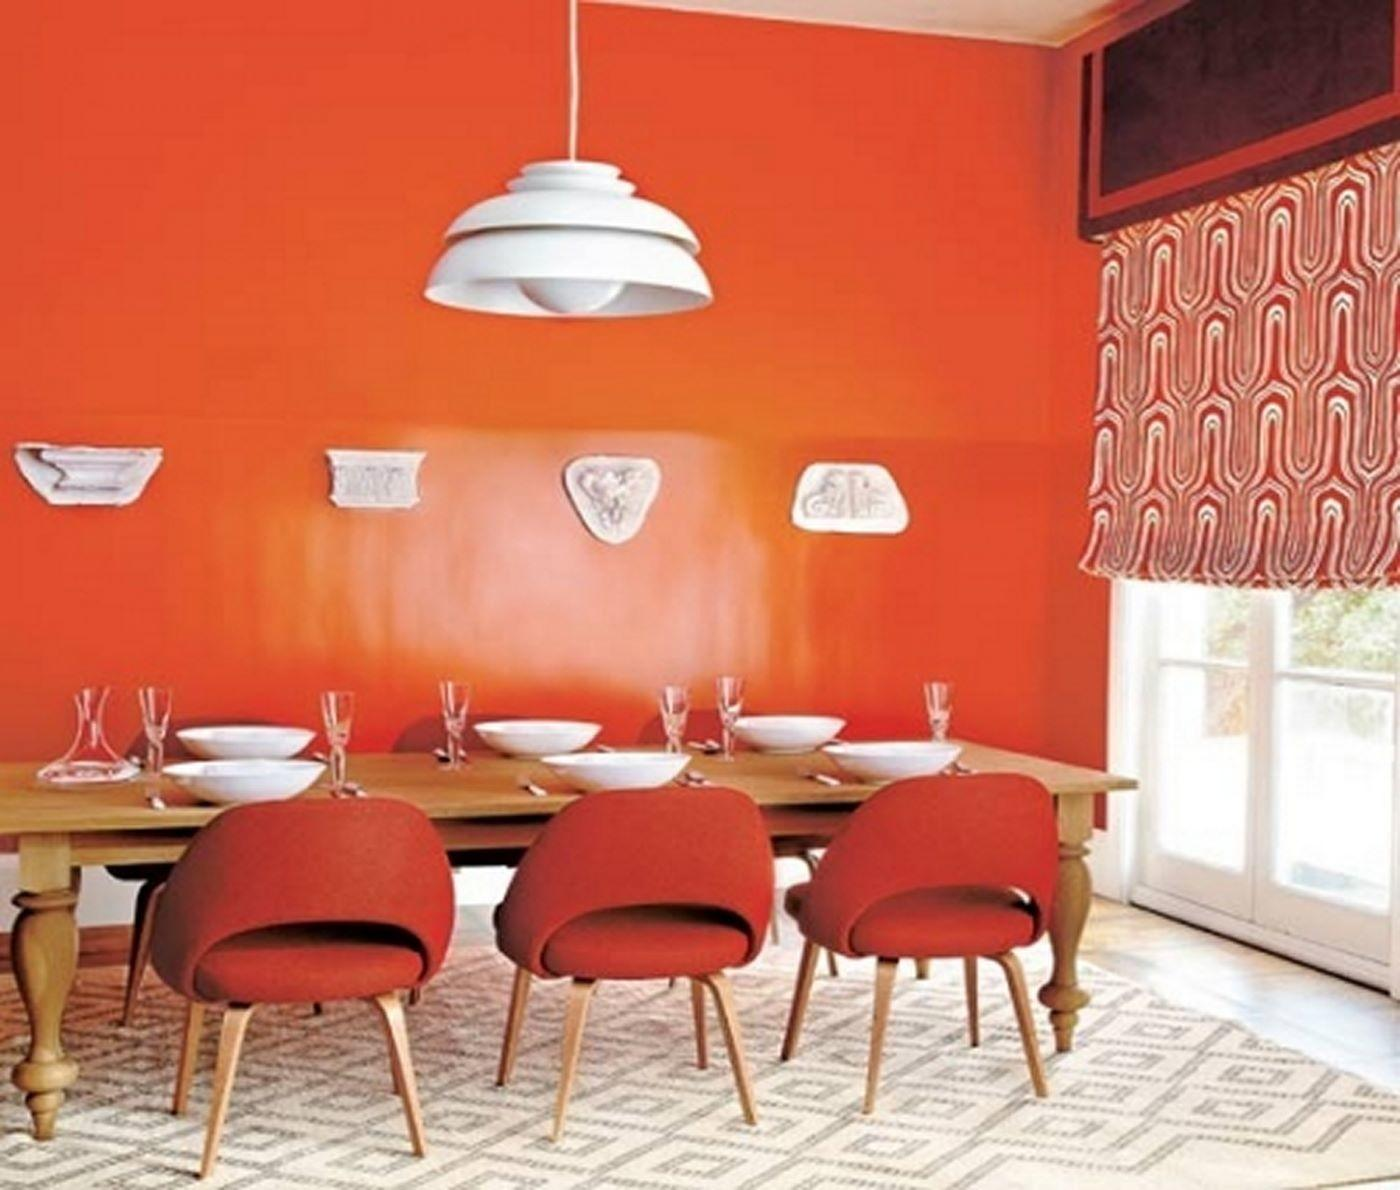 Contemporary Dining Room Orange Wall Paint Red Chairs